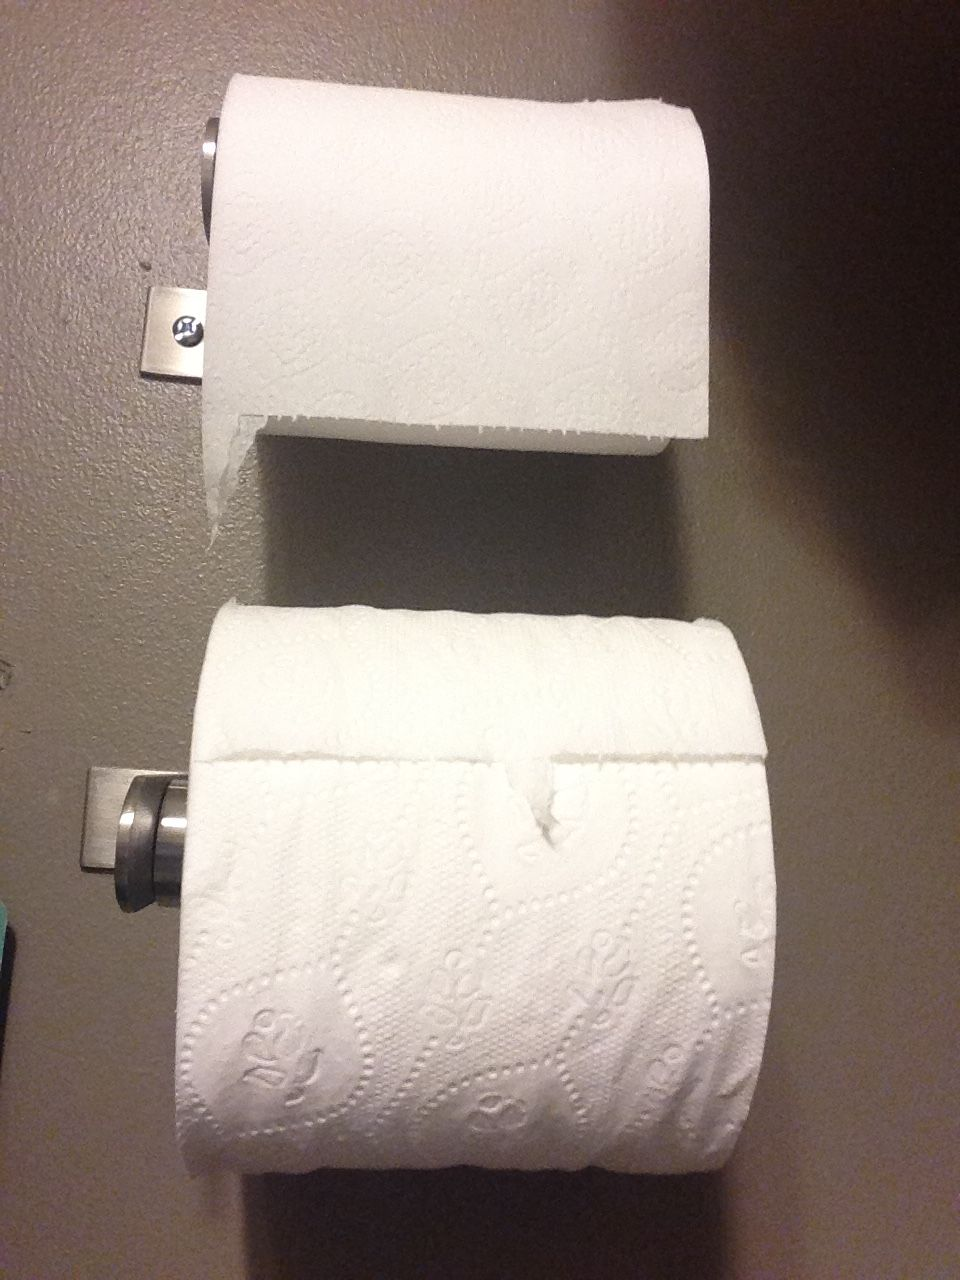 Fancy hotel: You even get to choose what grit of toilet paper you want to use.